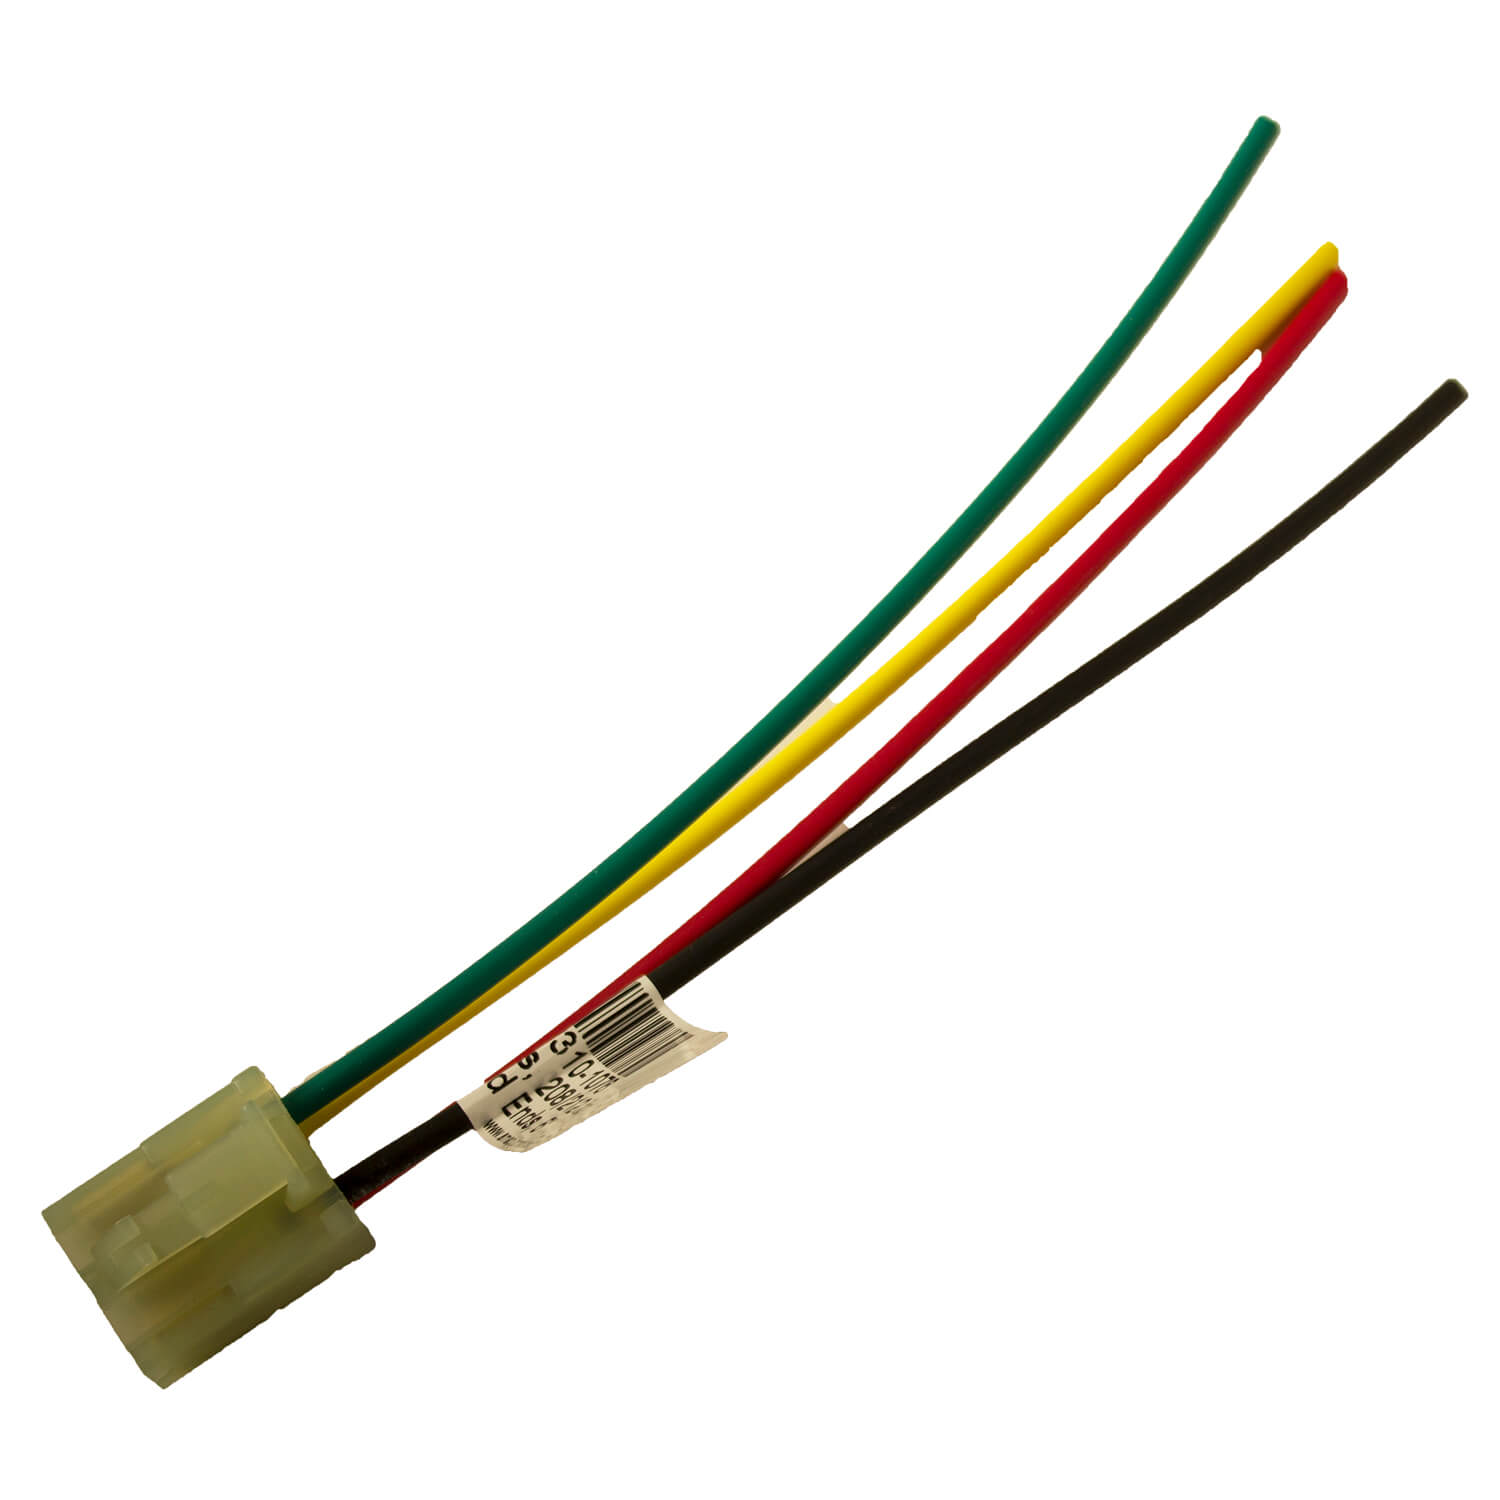 hight resolution of 310 1076 wire harness jpg